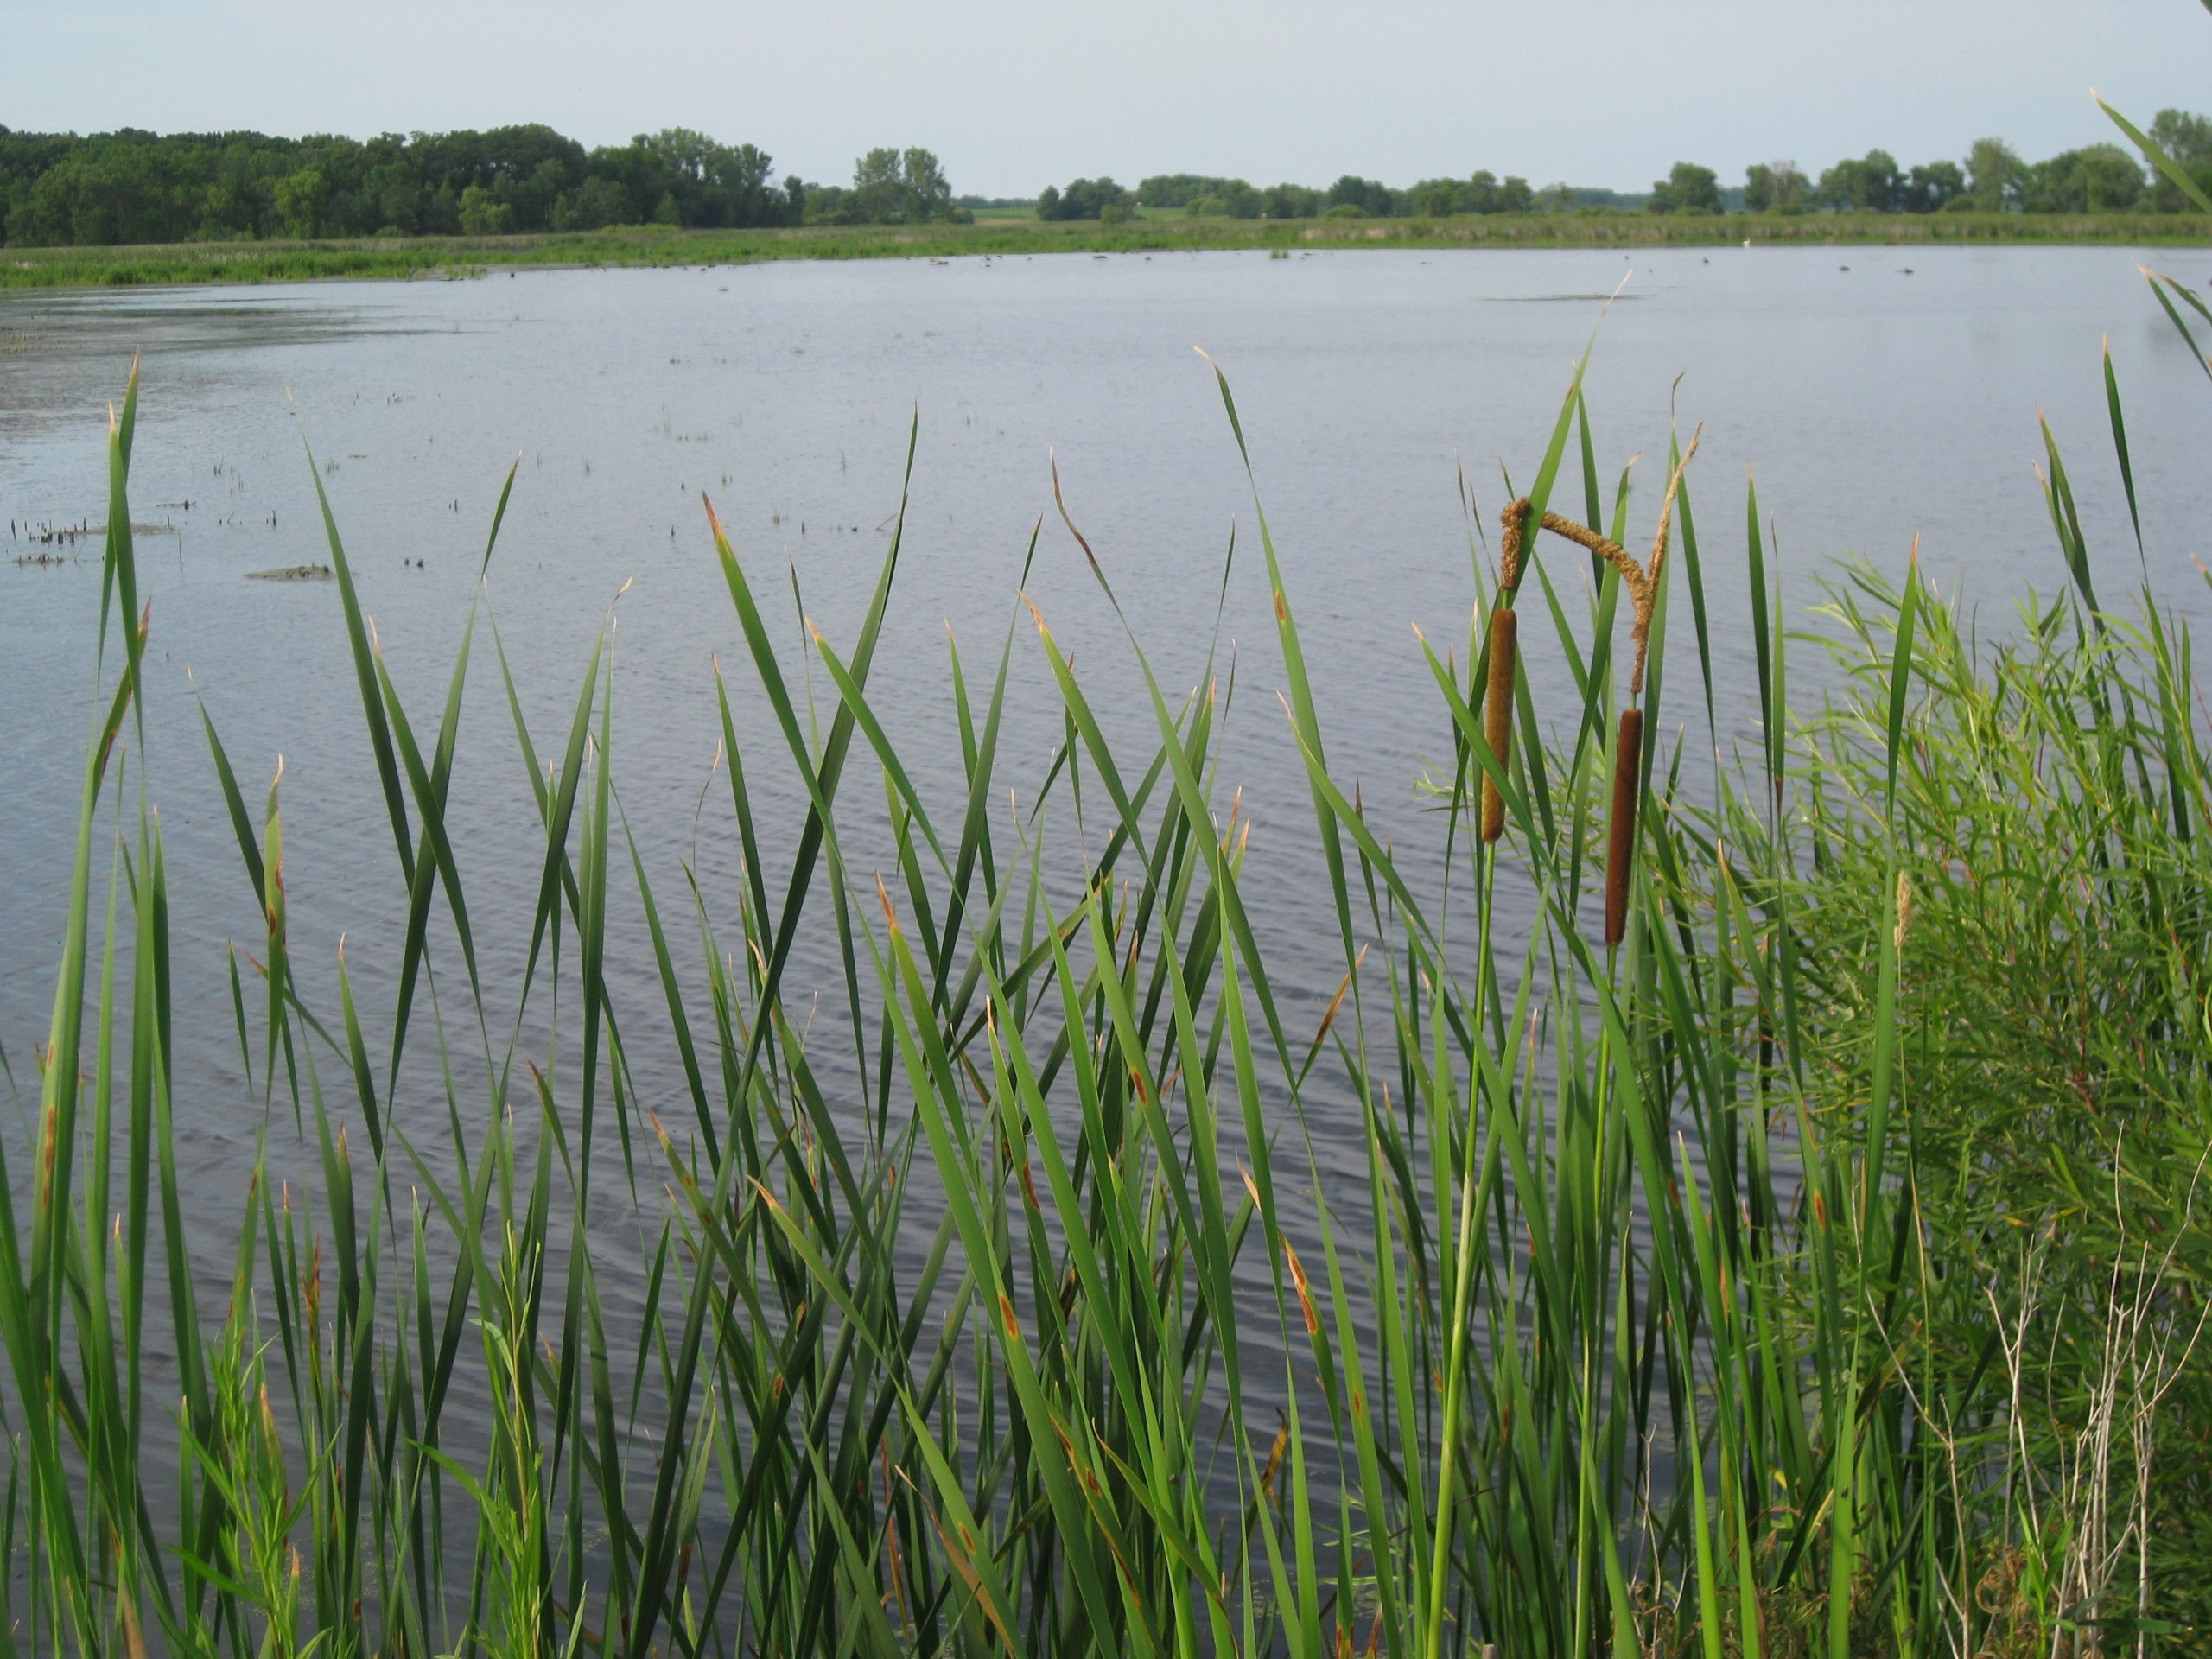 A cherished destination: Horicon Marsh Wildlife Refuge - 30,000-acre sanctuary for migratory birds.